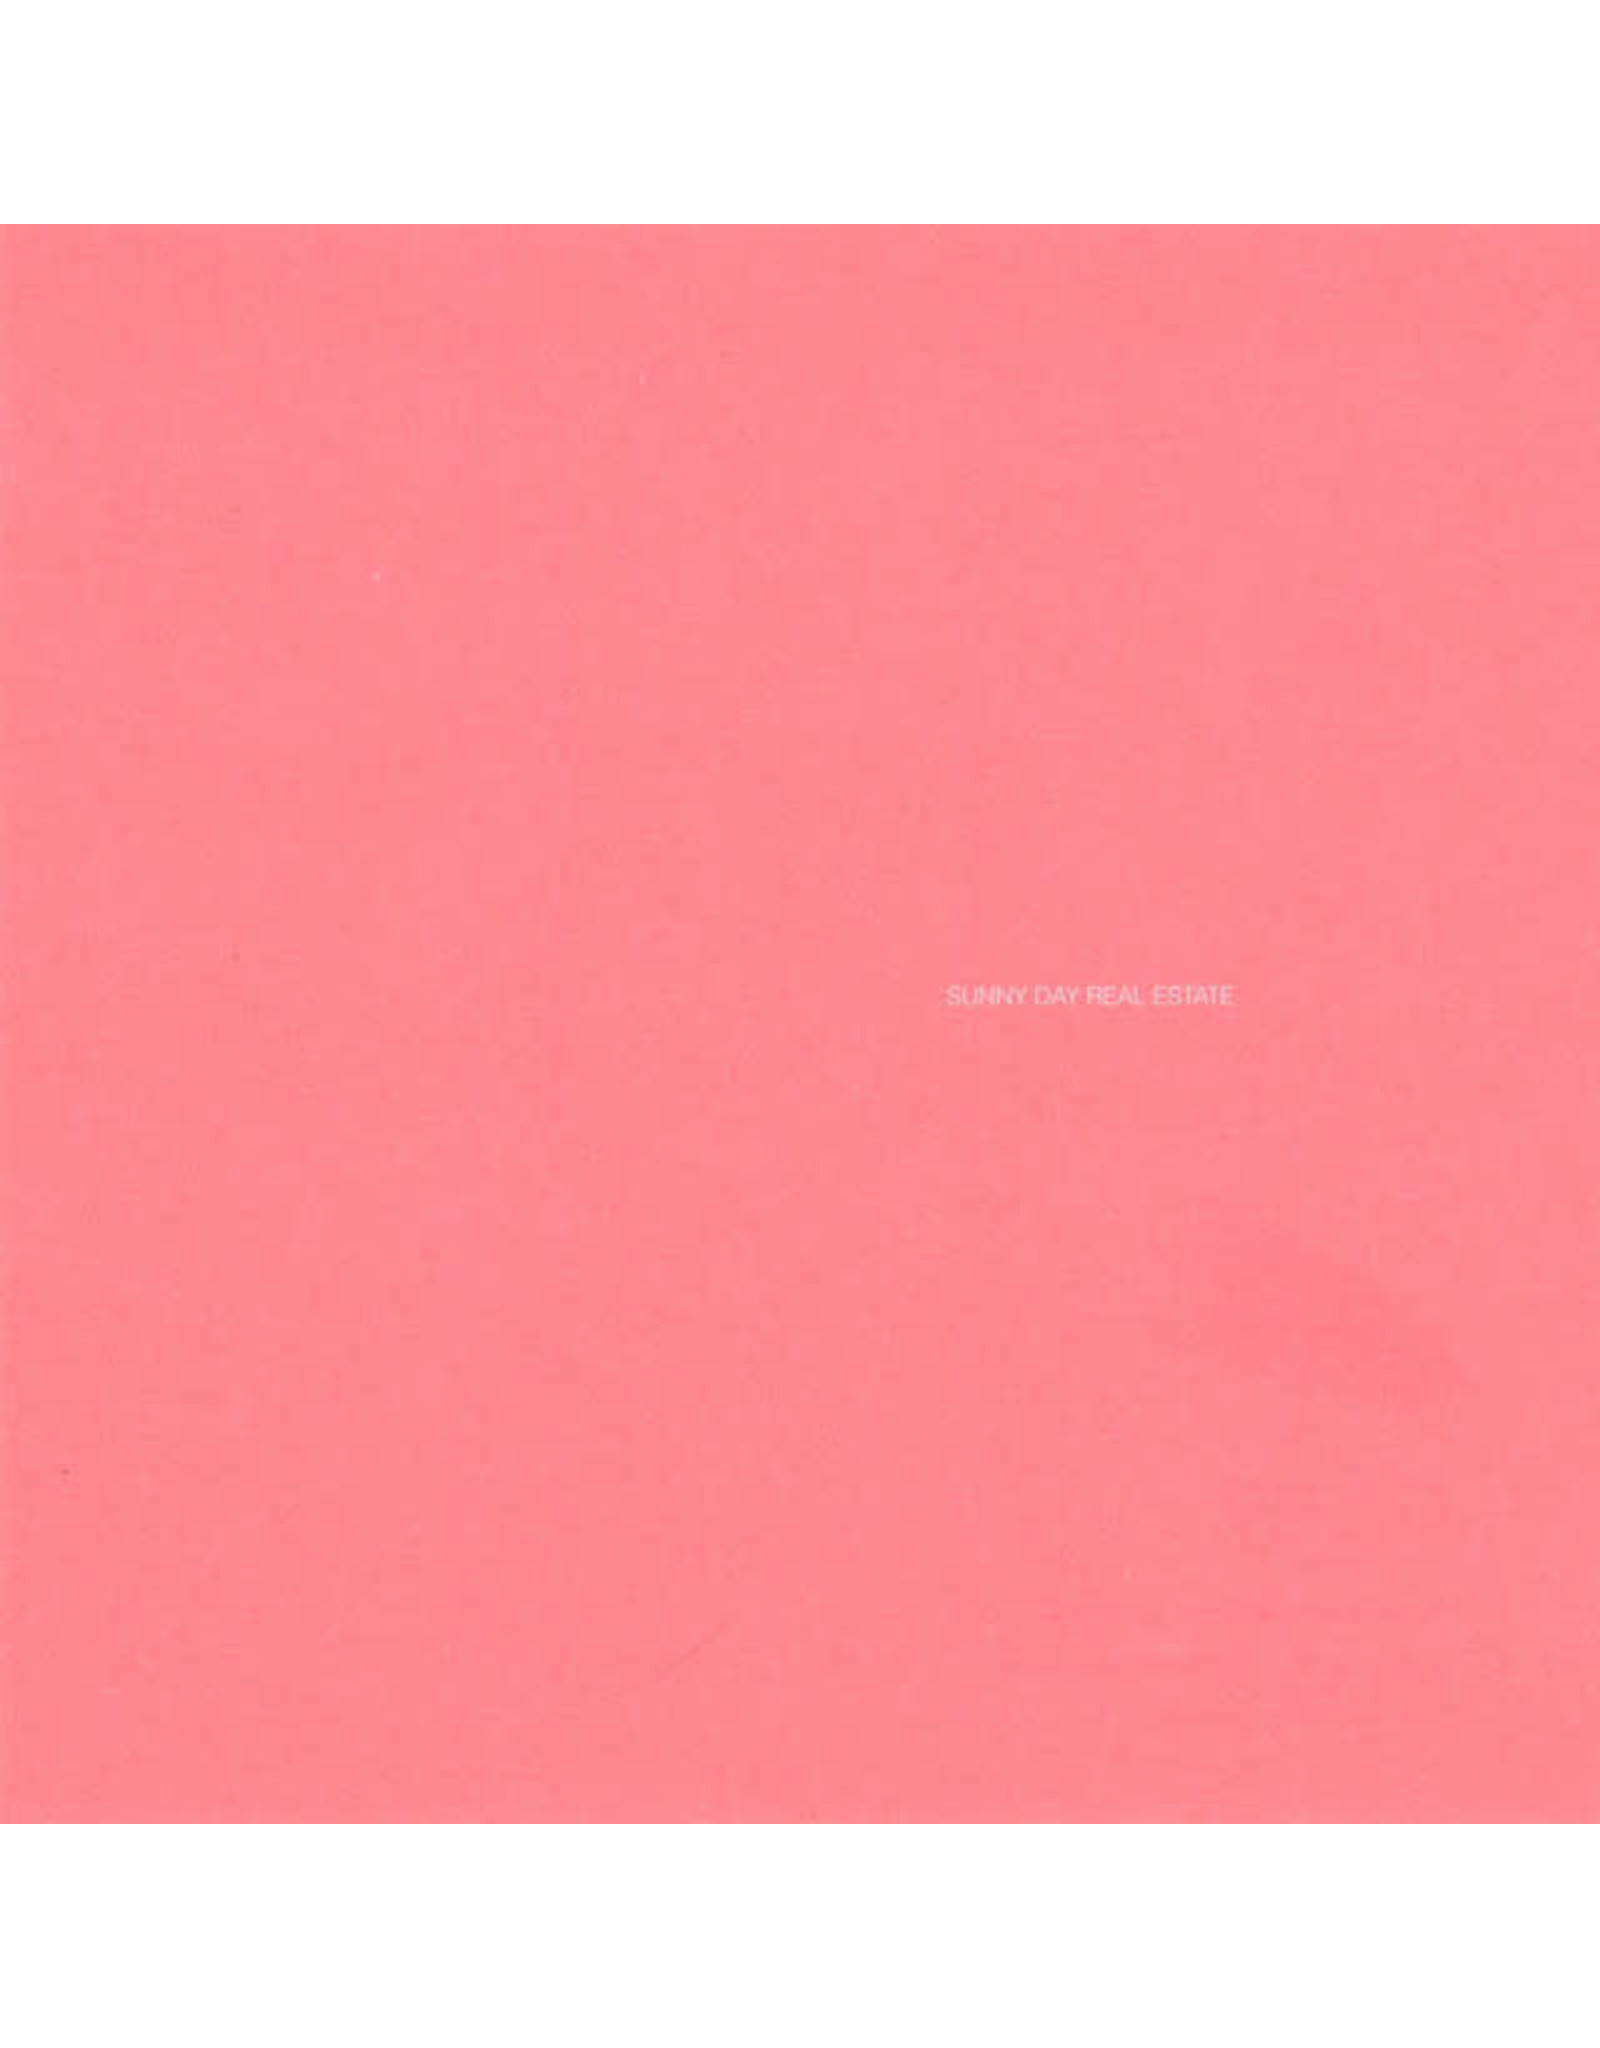 Vinyl Sunny Day Real Estate - LP2  Final Sale